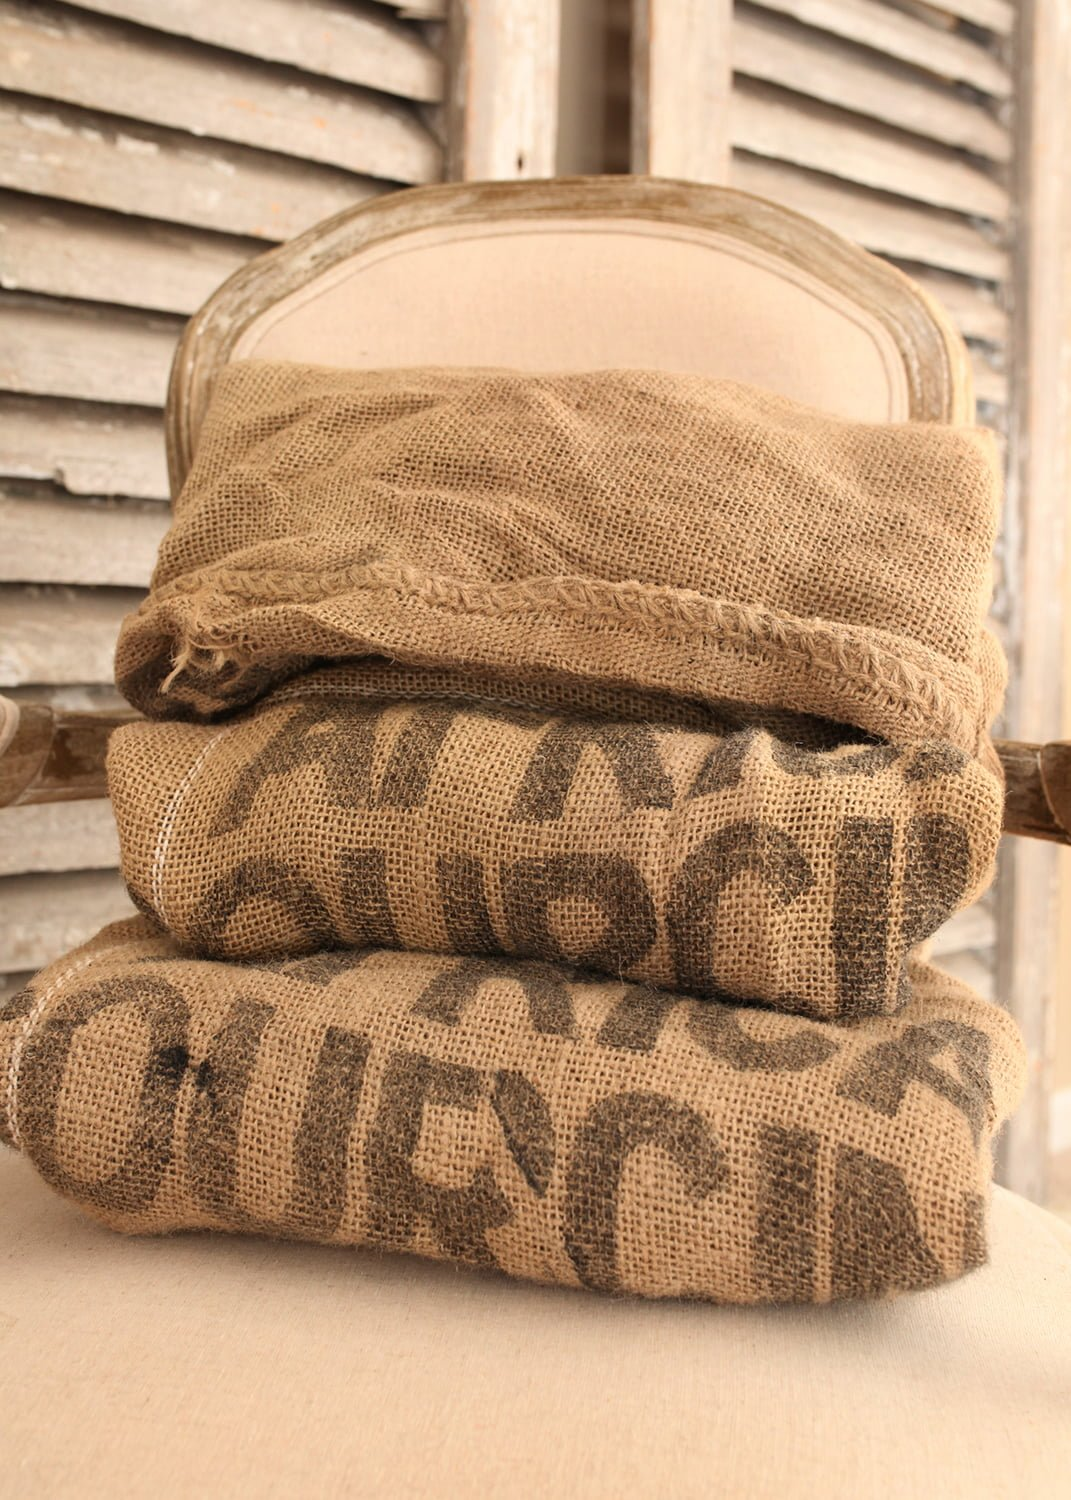 Burlap Bags Home Decor